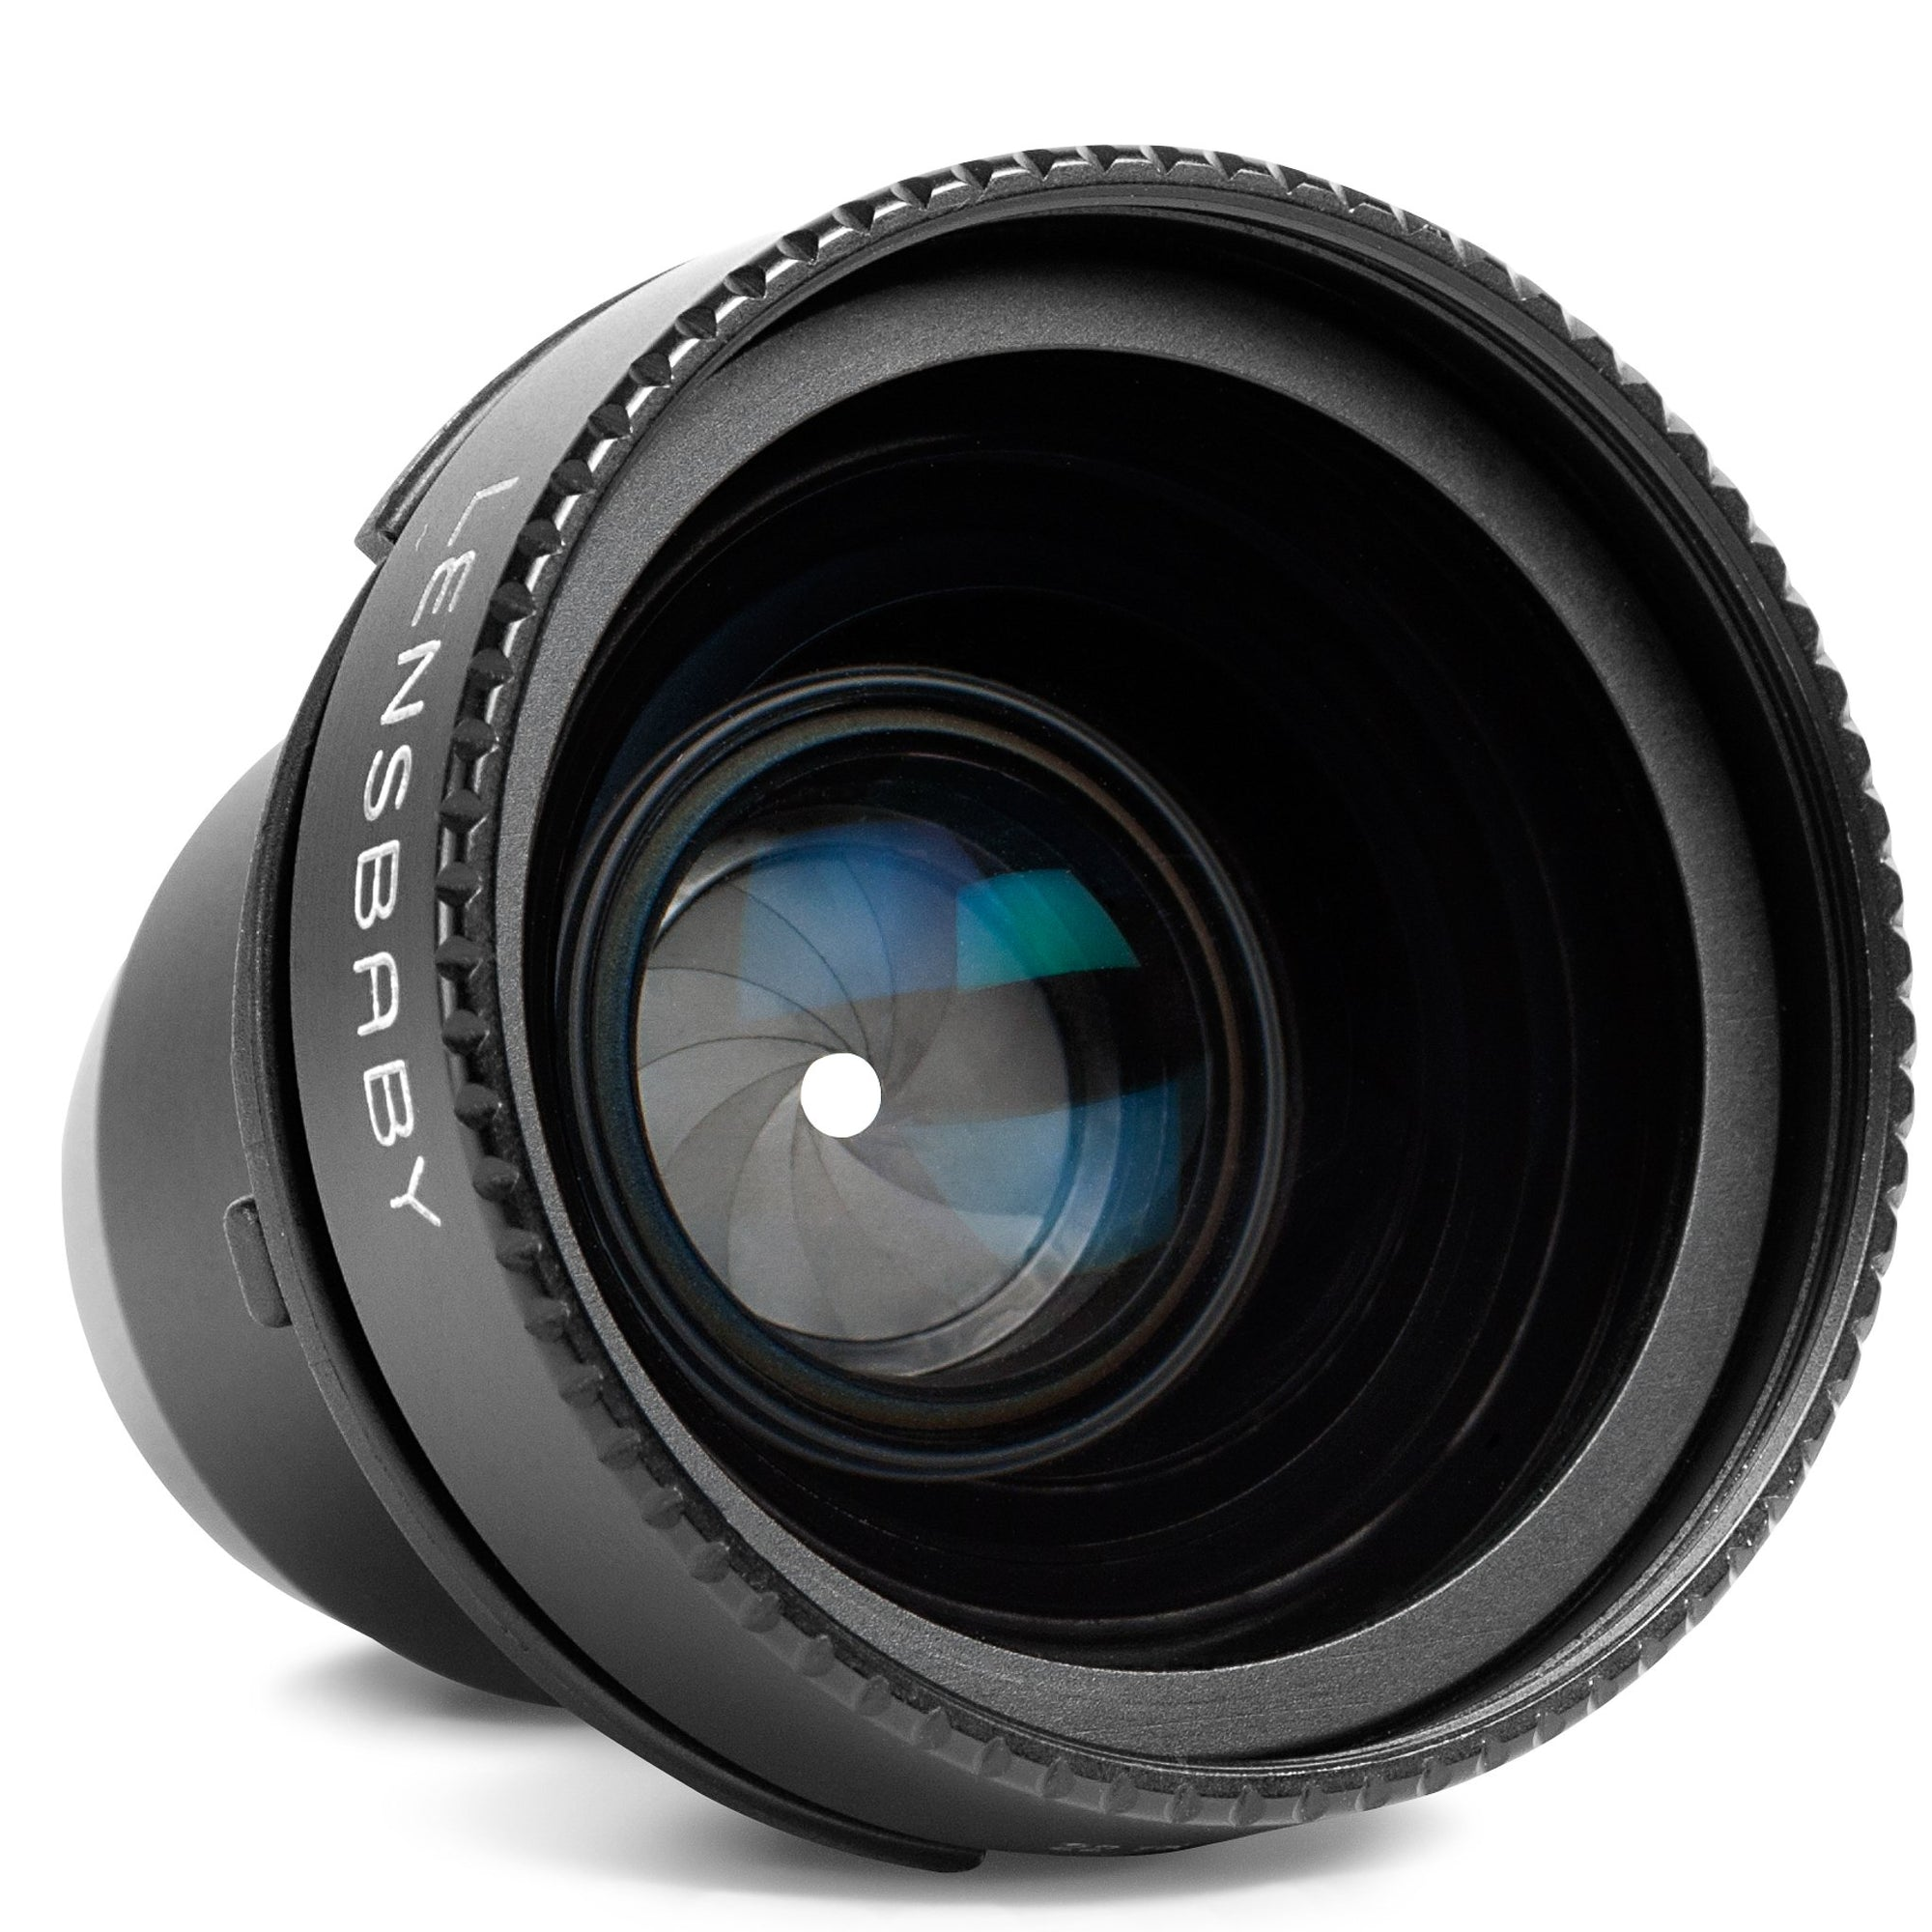 Sweet 35 Optic - Lensbaby Creative Effect Camera Lenses